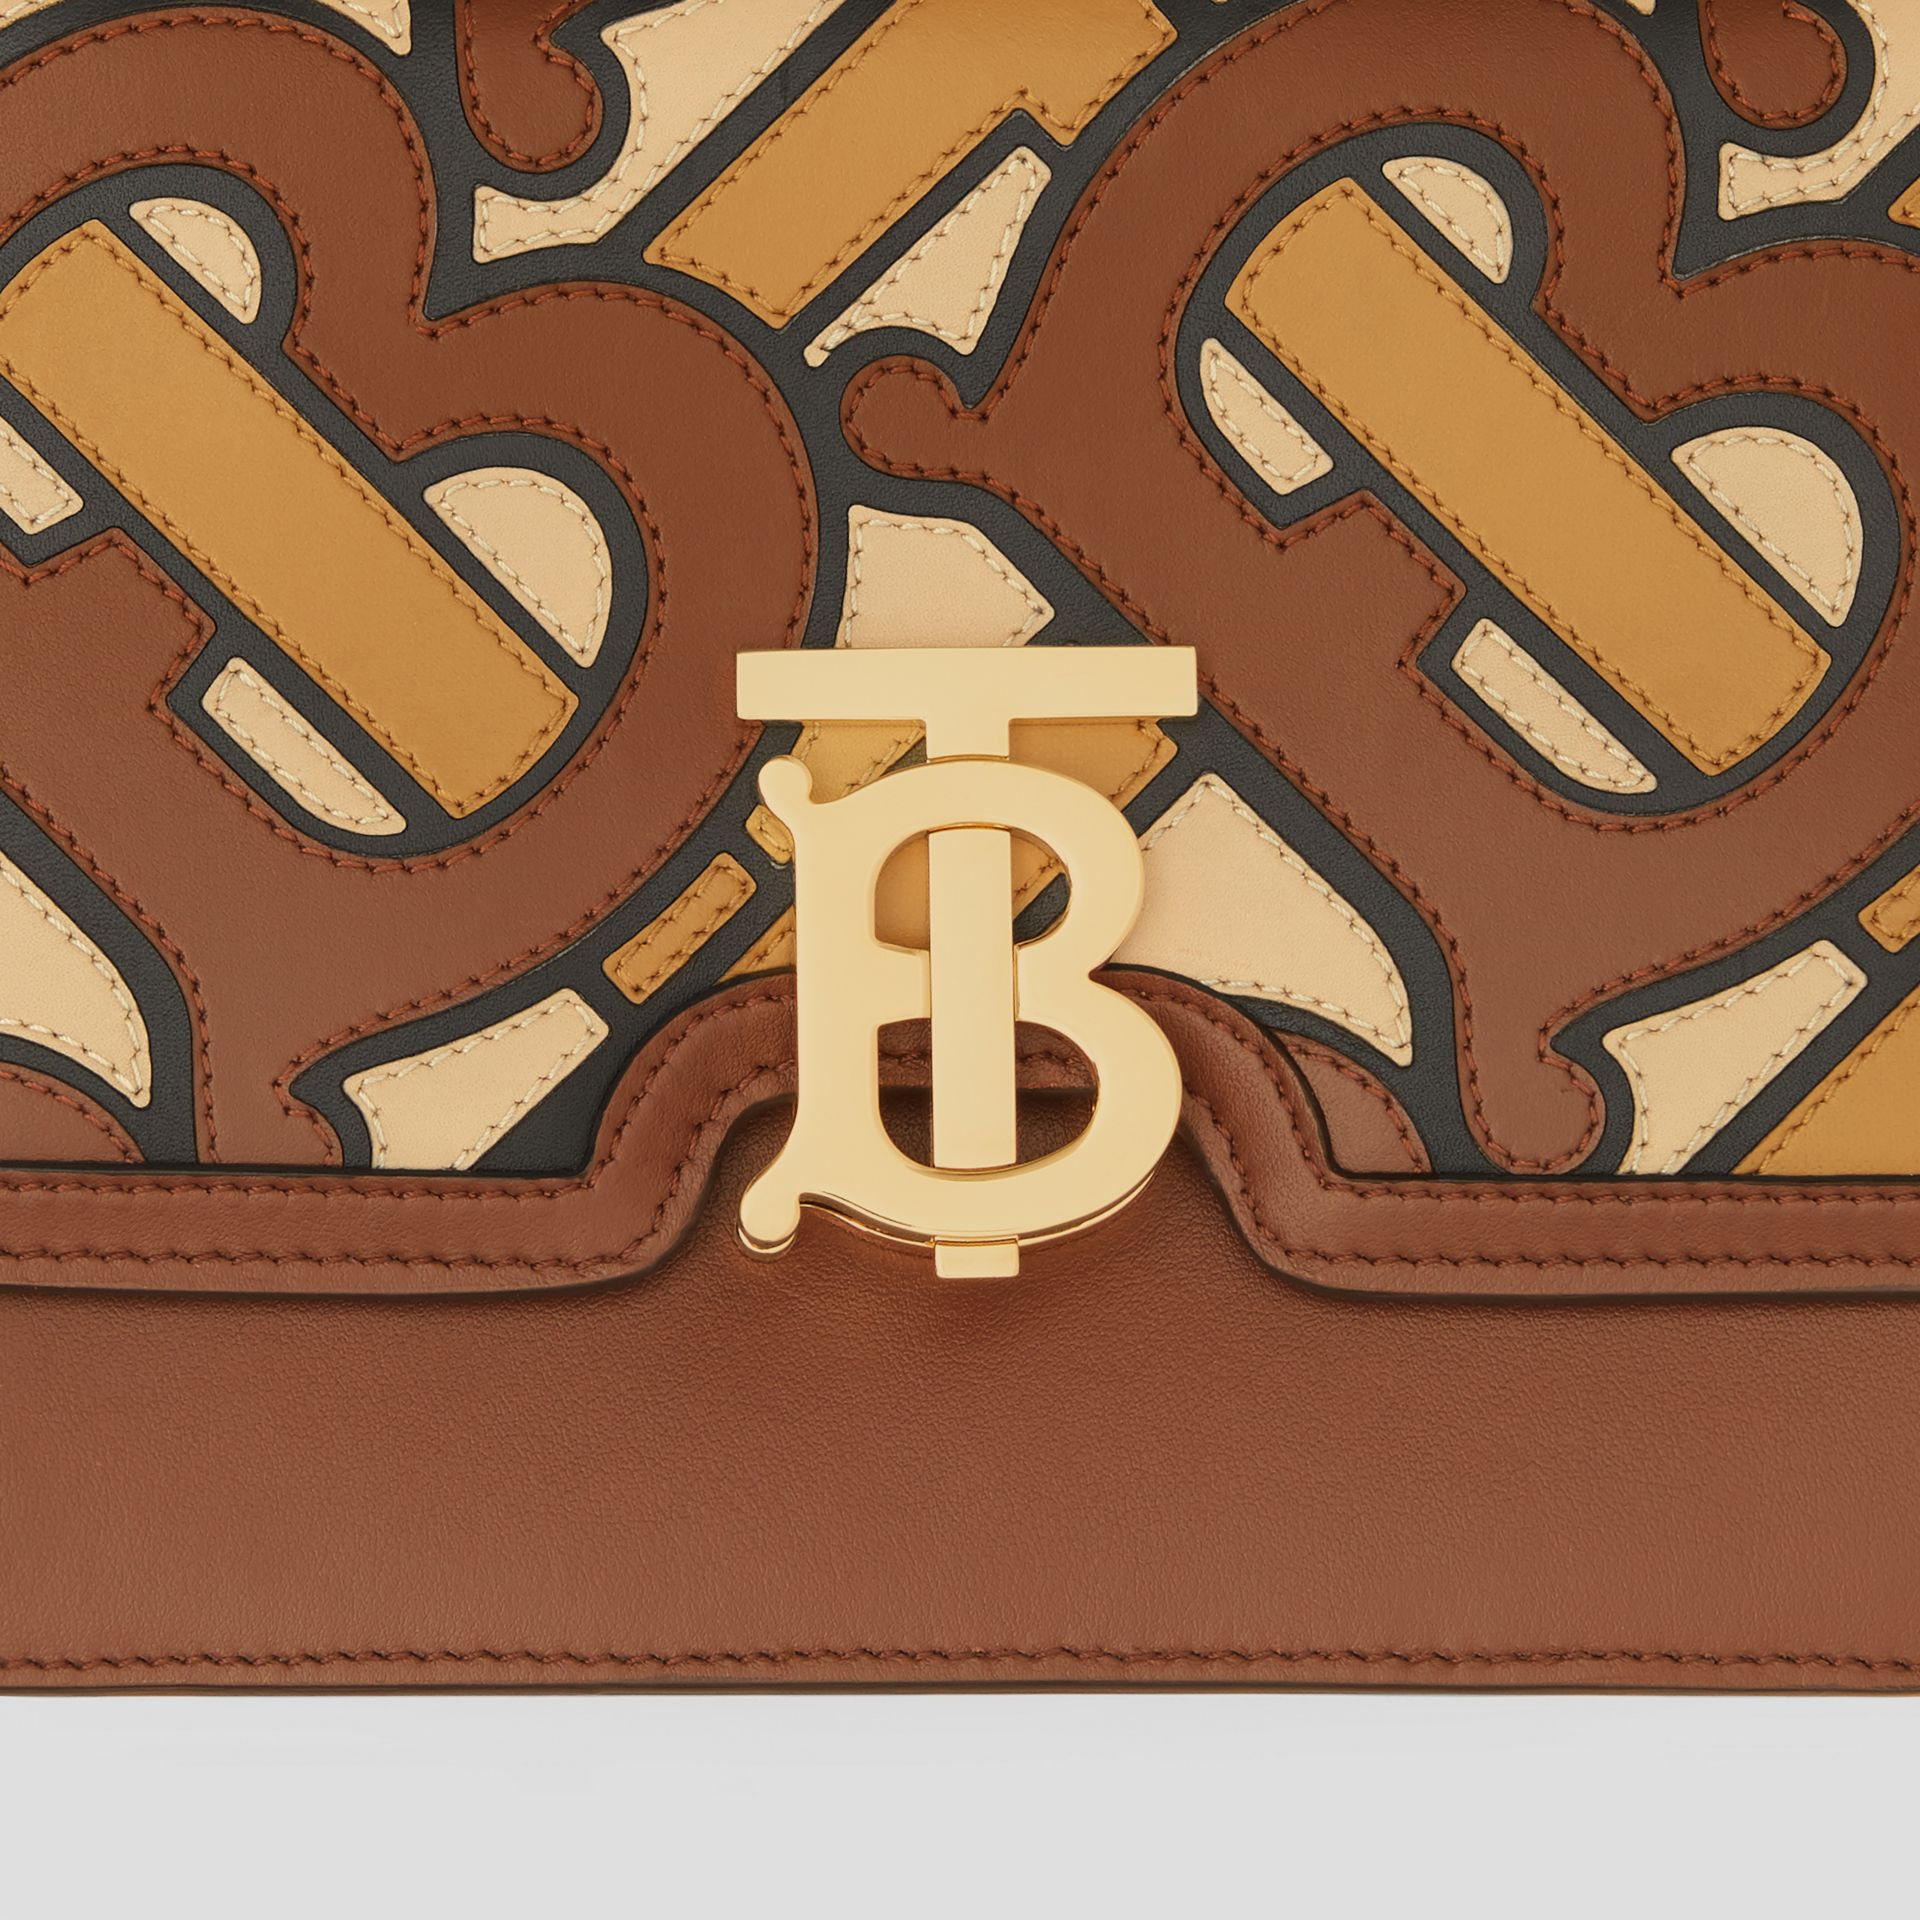 Small Monogram Appliqué Leather TB Bag in Brown - Women | Burberry United Kingdom - gallery image 1